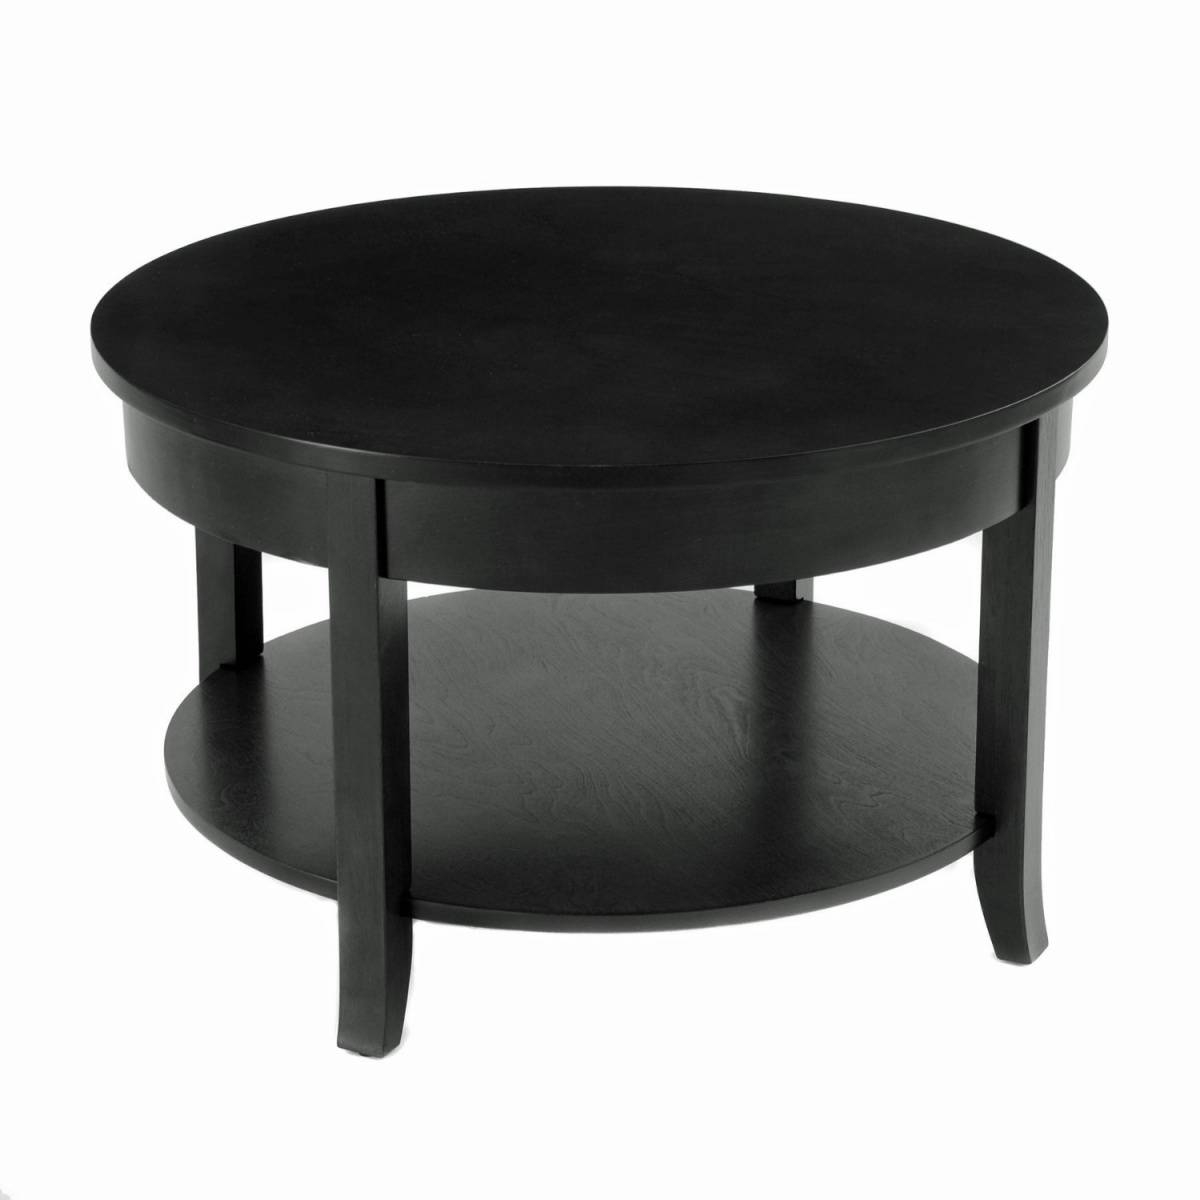 Round Coffee Table With Storage Singapore: 30 The Best Round Coffee Tables With Storage